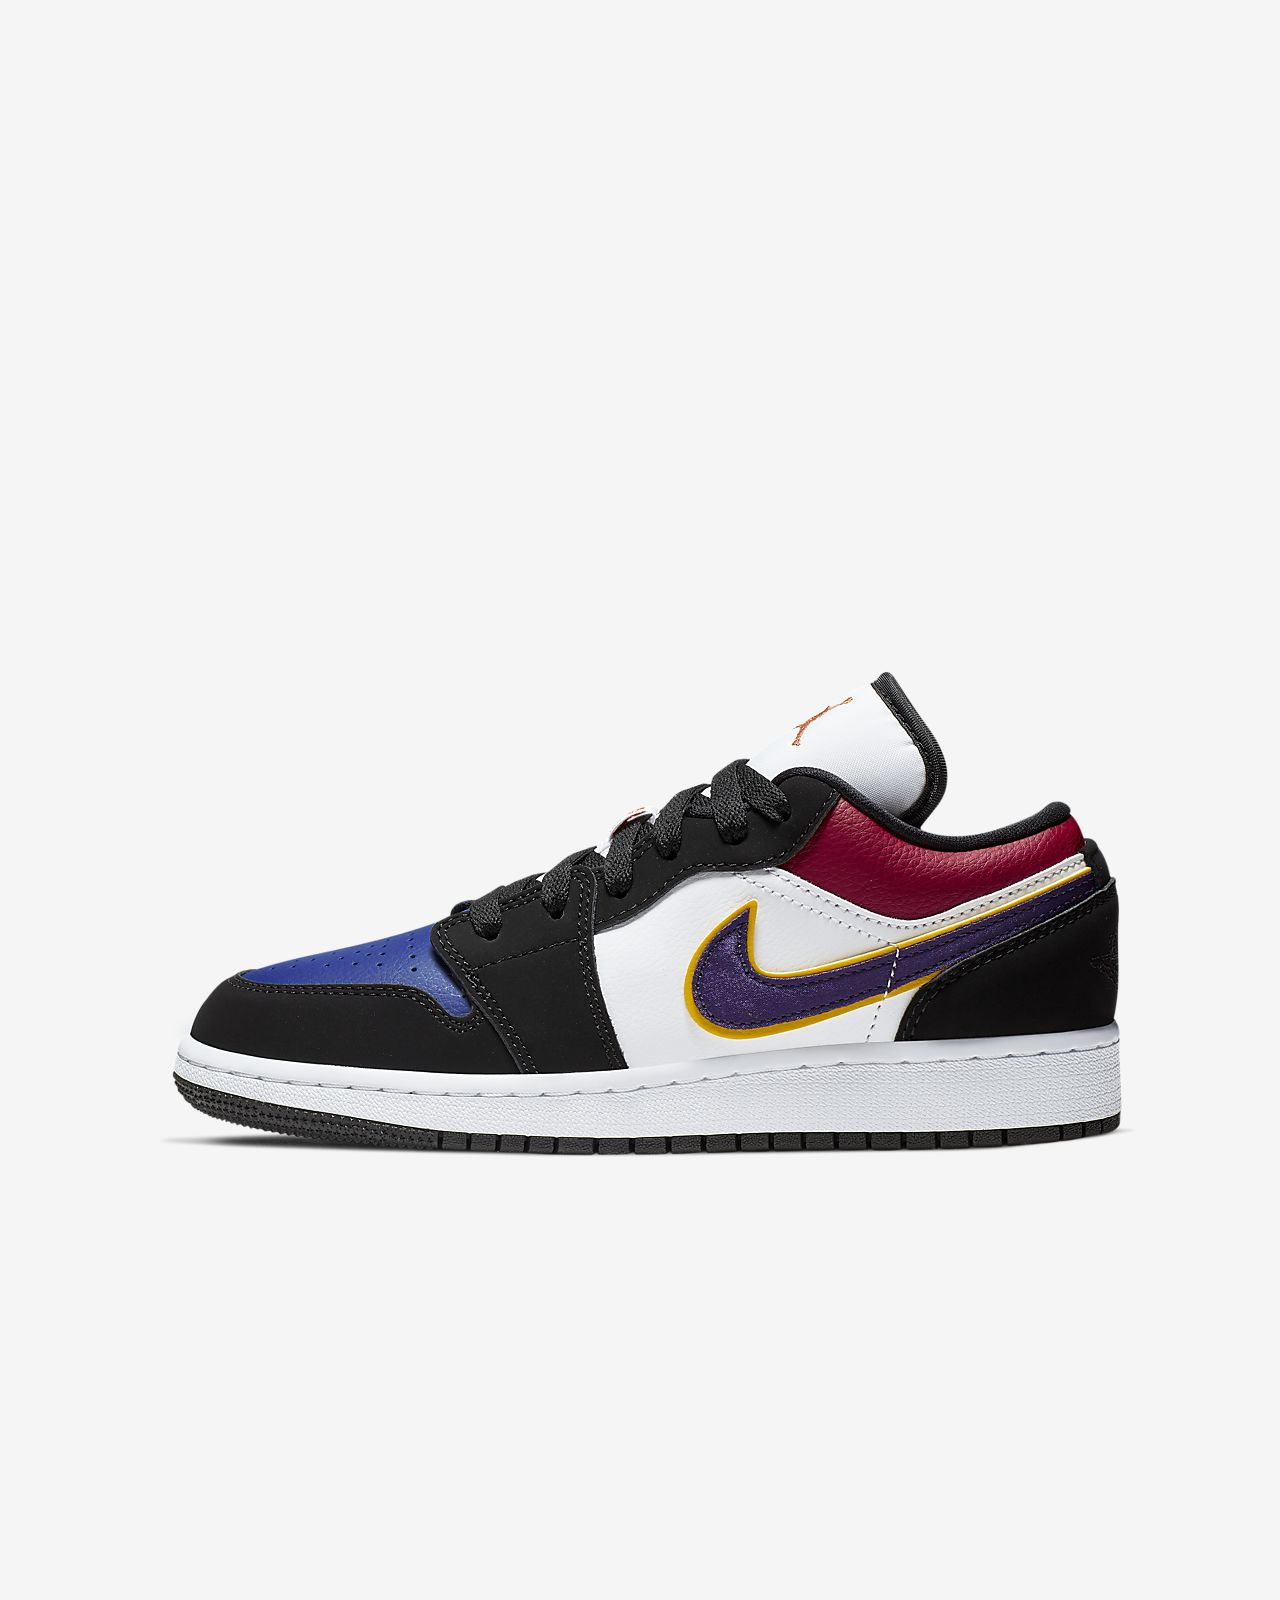 quality design 1f5af 14fdf Air Jordan 1 Low Big Kids' Shoe